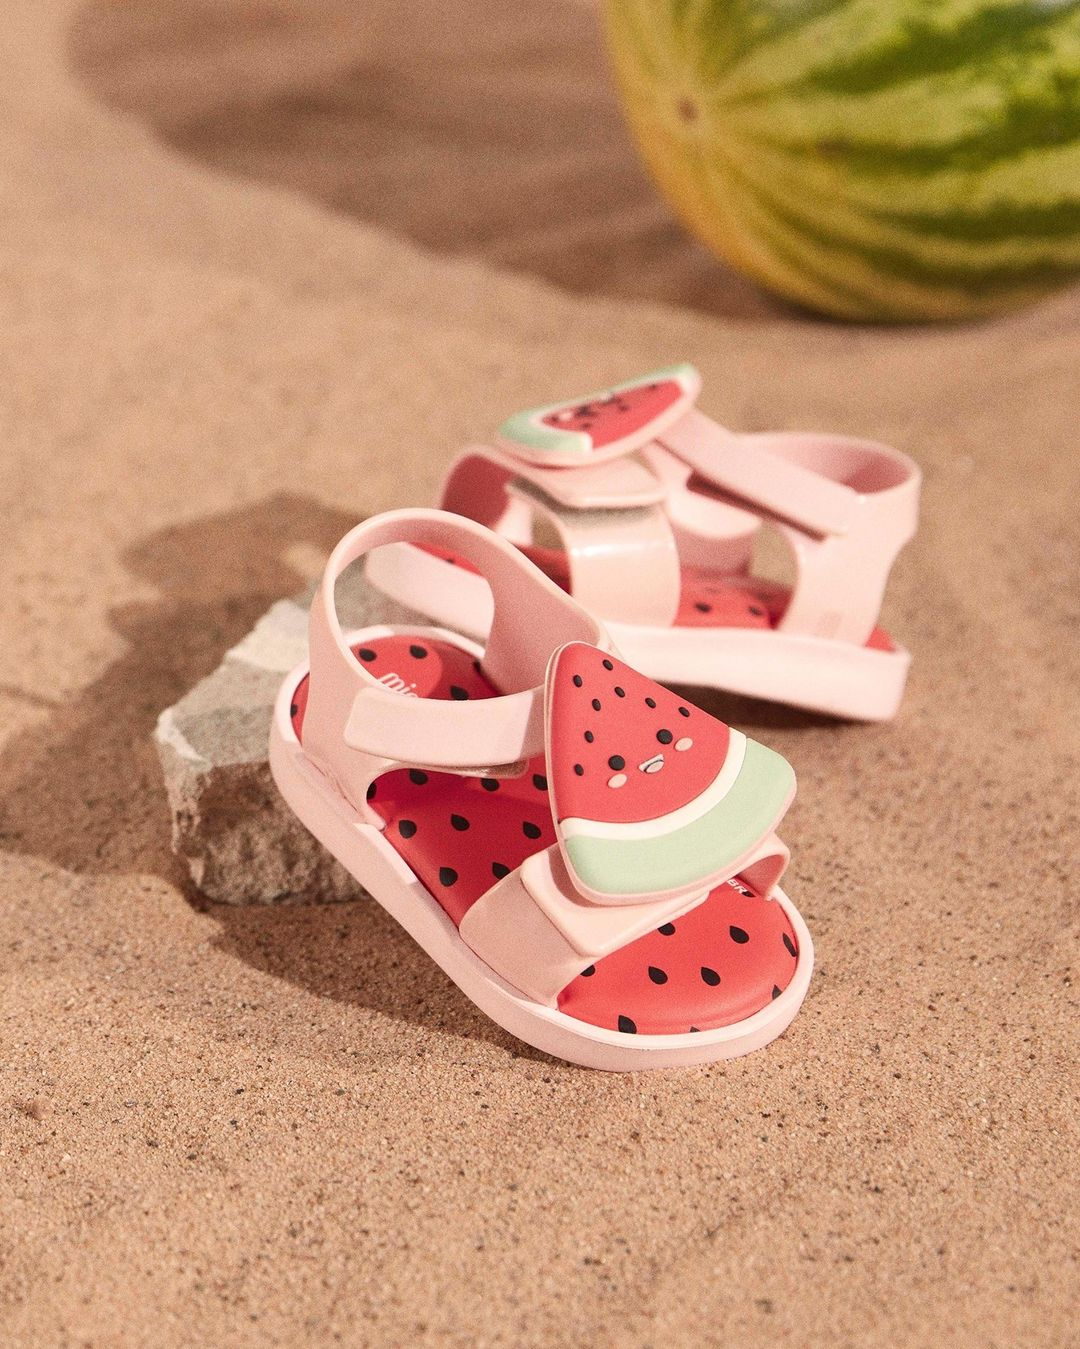 pink water melon sandals on the sand